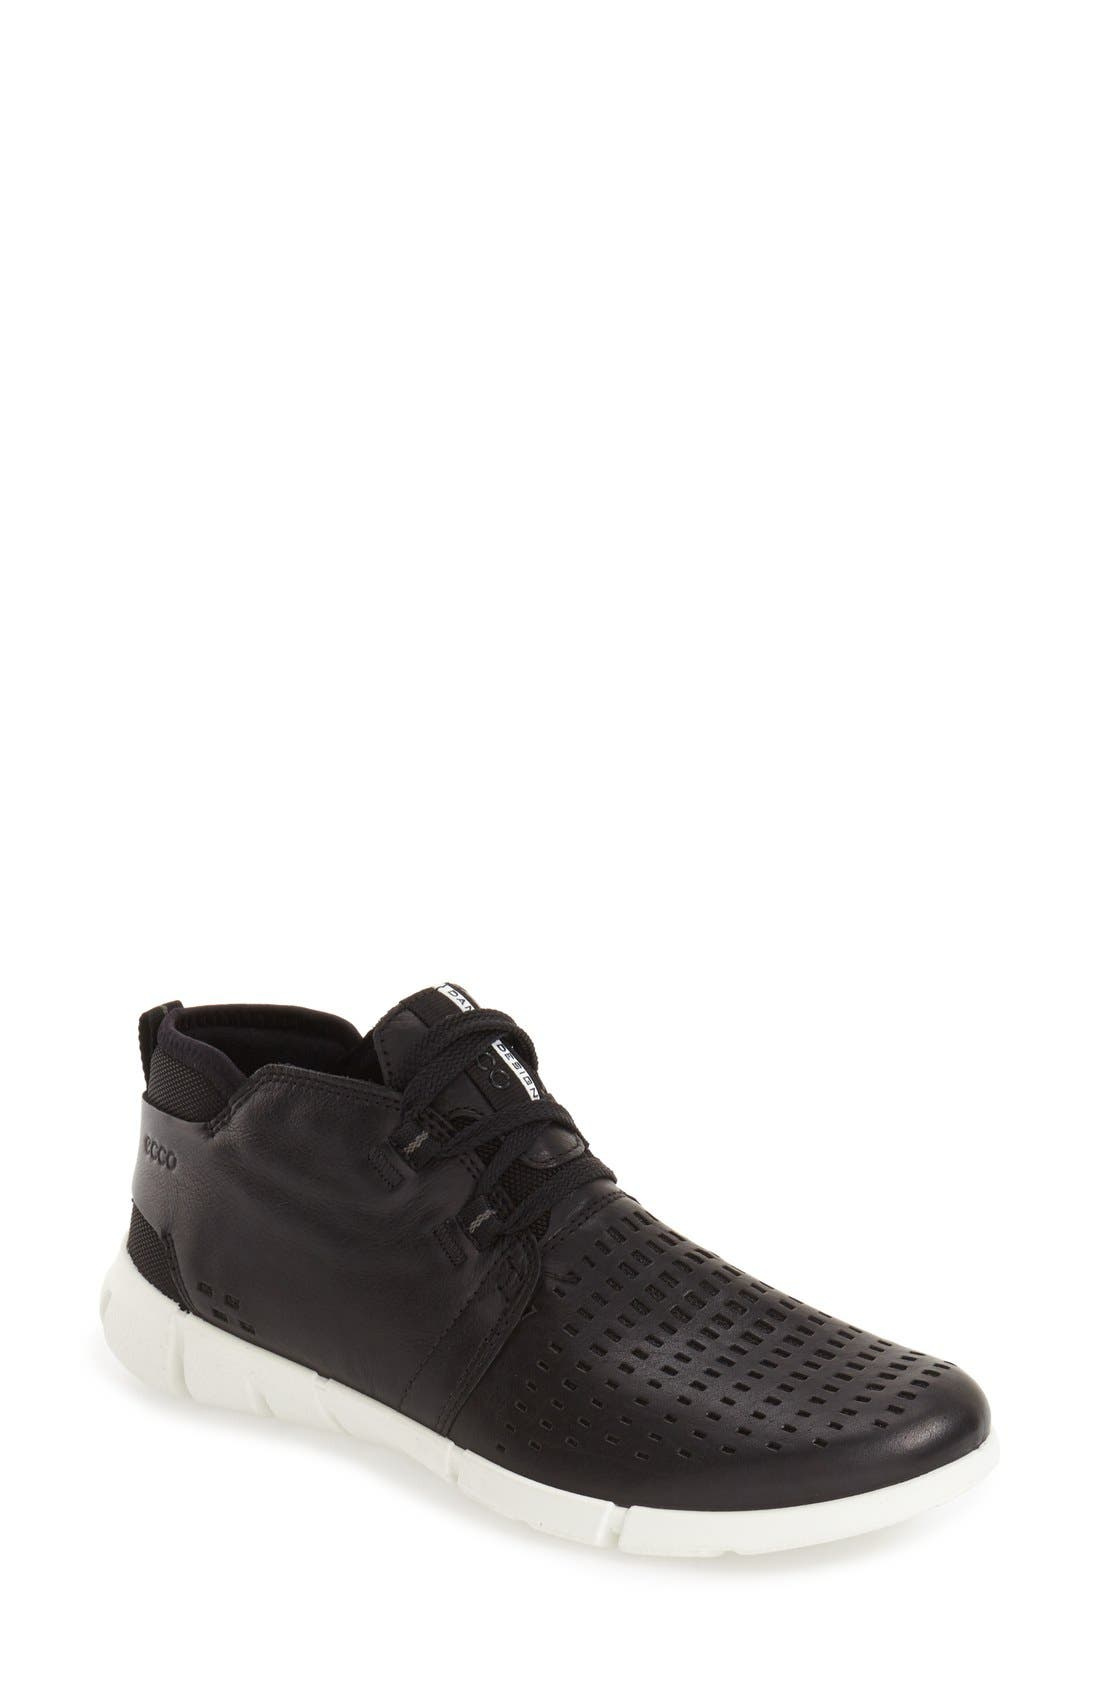 Alternate Image 1 Selected - ECCO 'Intrinsic' Chukka Sneaker (Women)